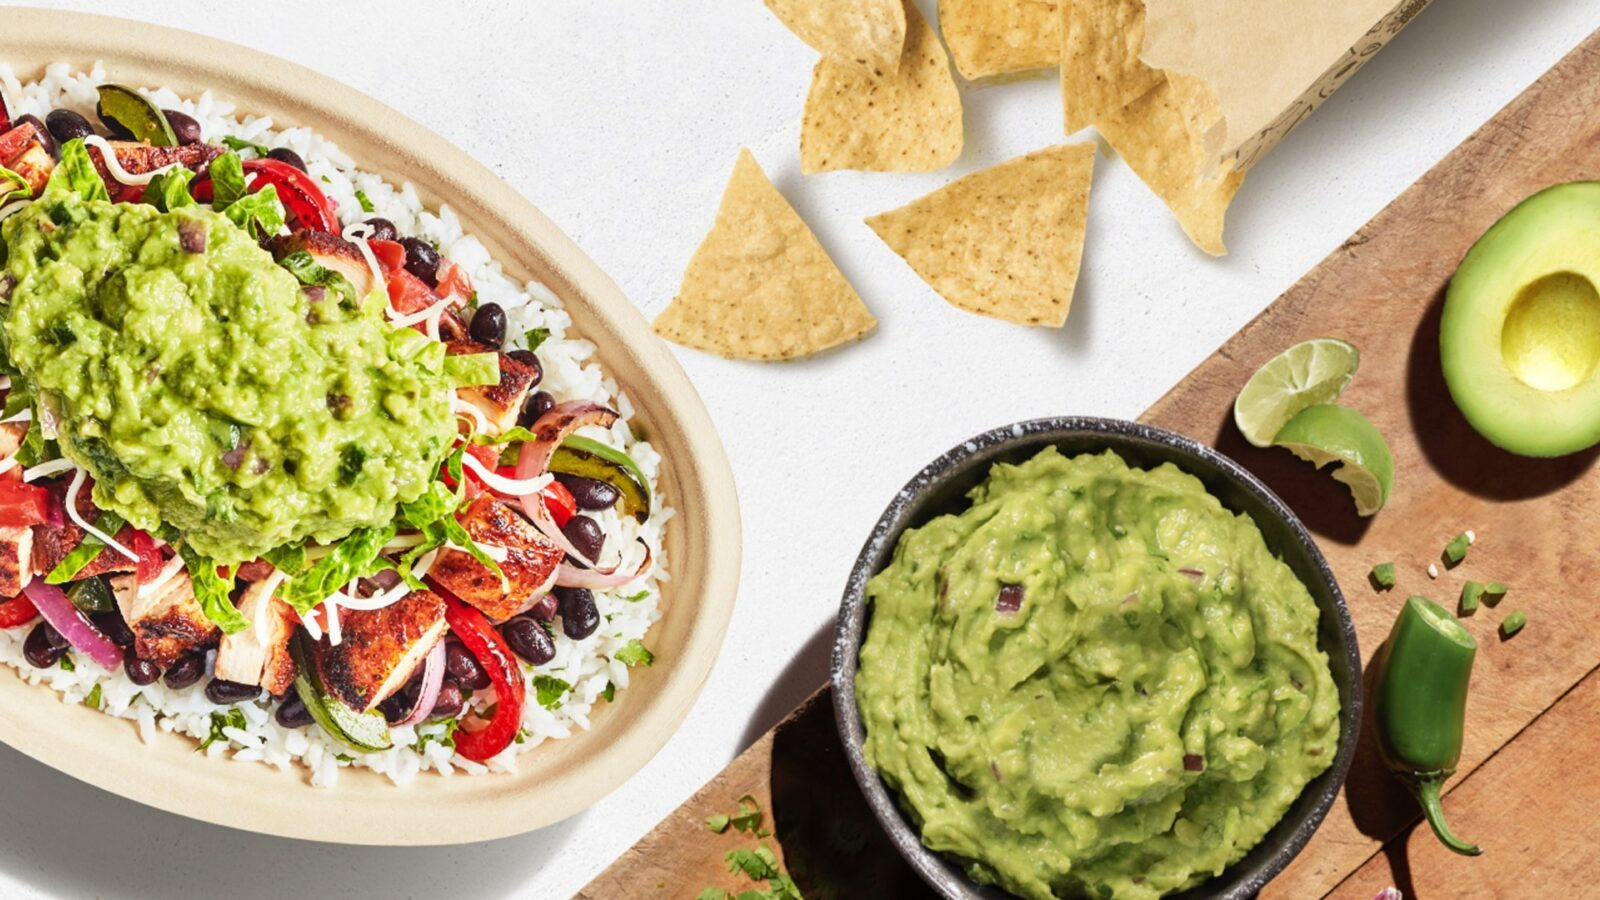 Chipotle – Free Guac On National Avocado Day